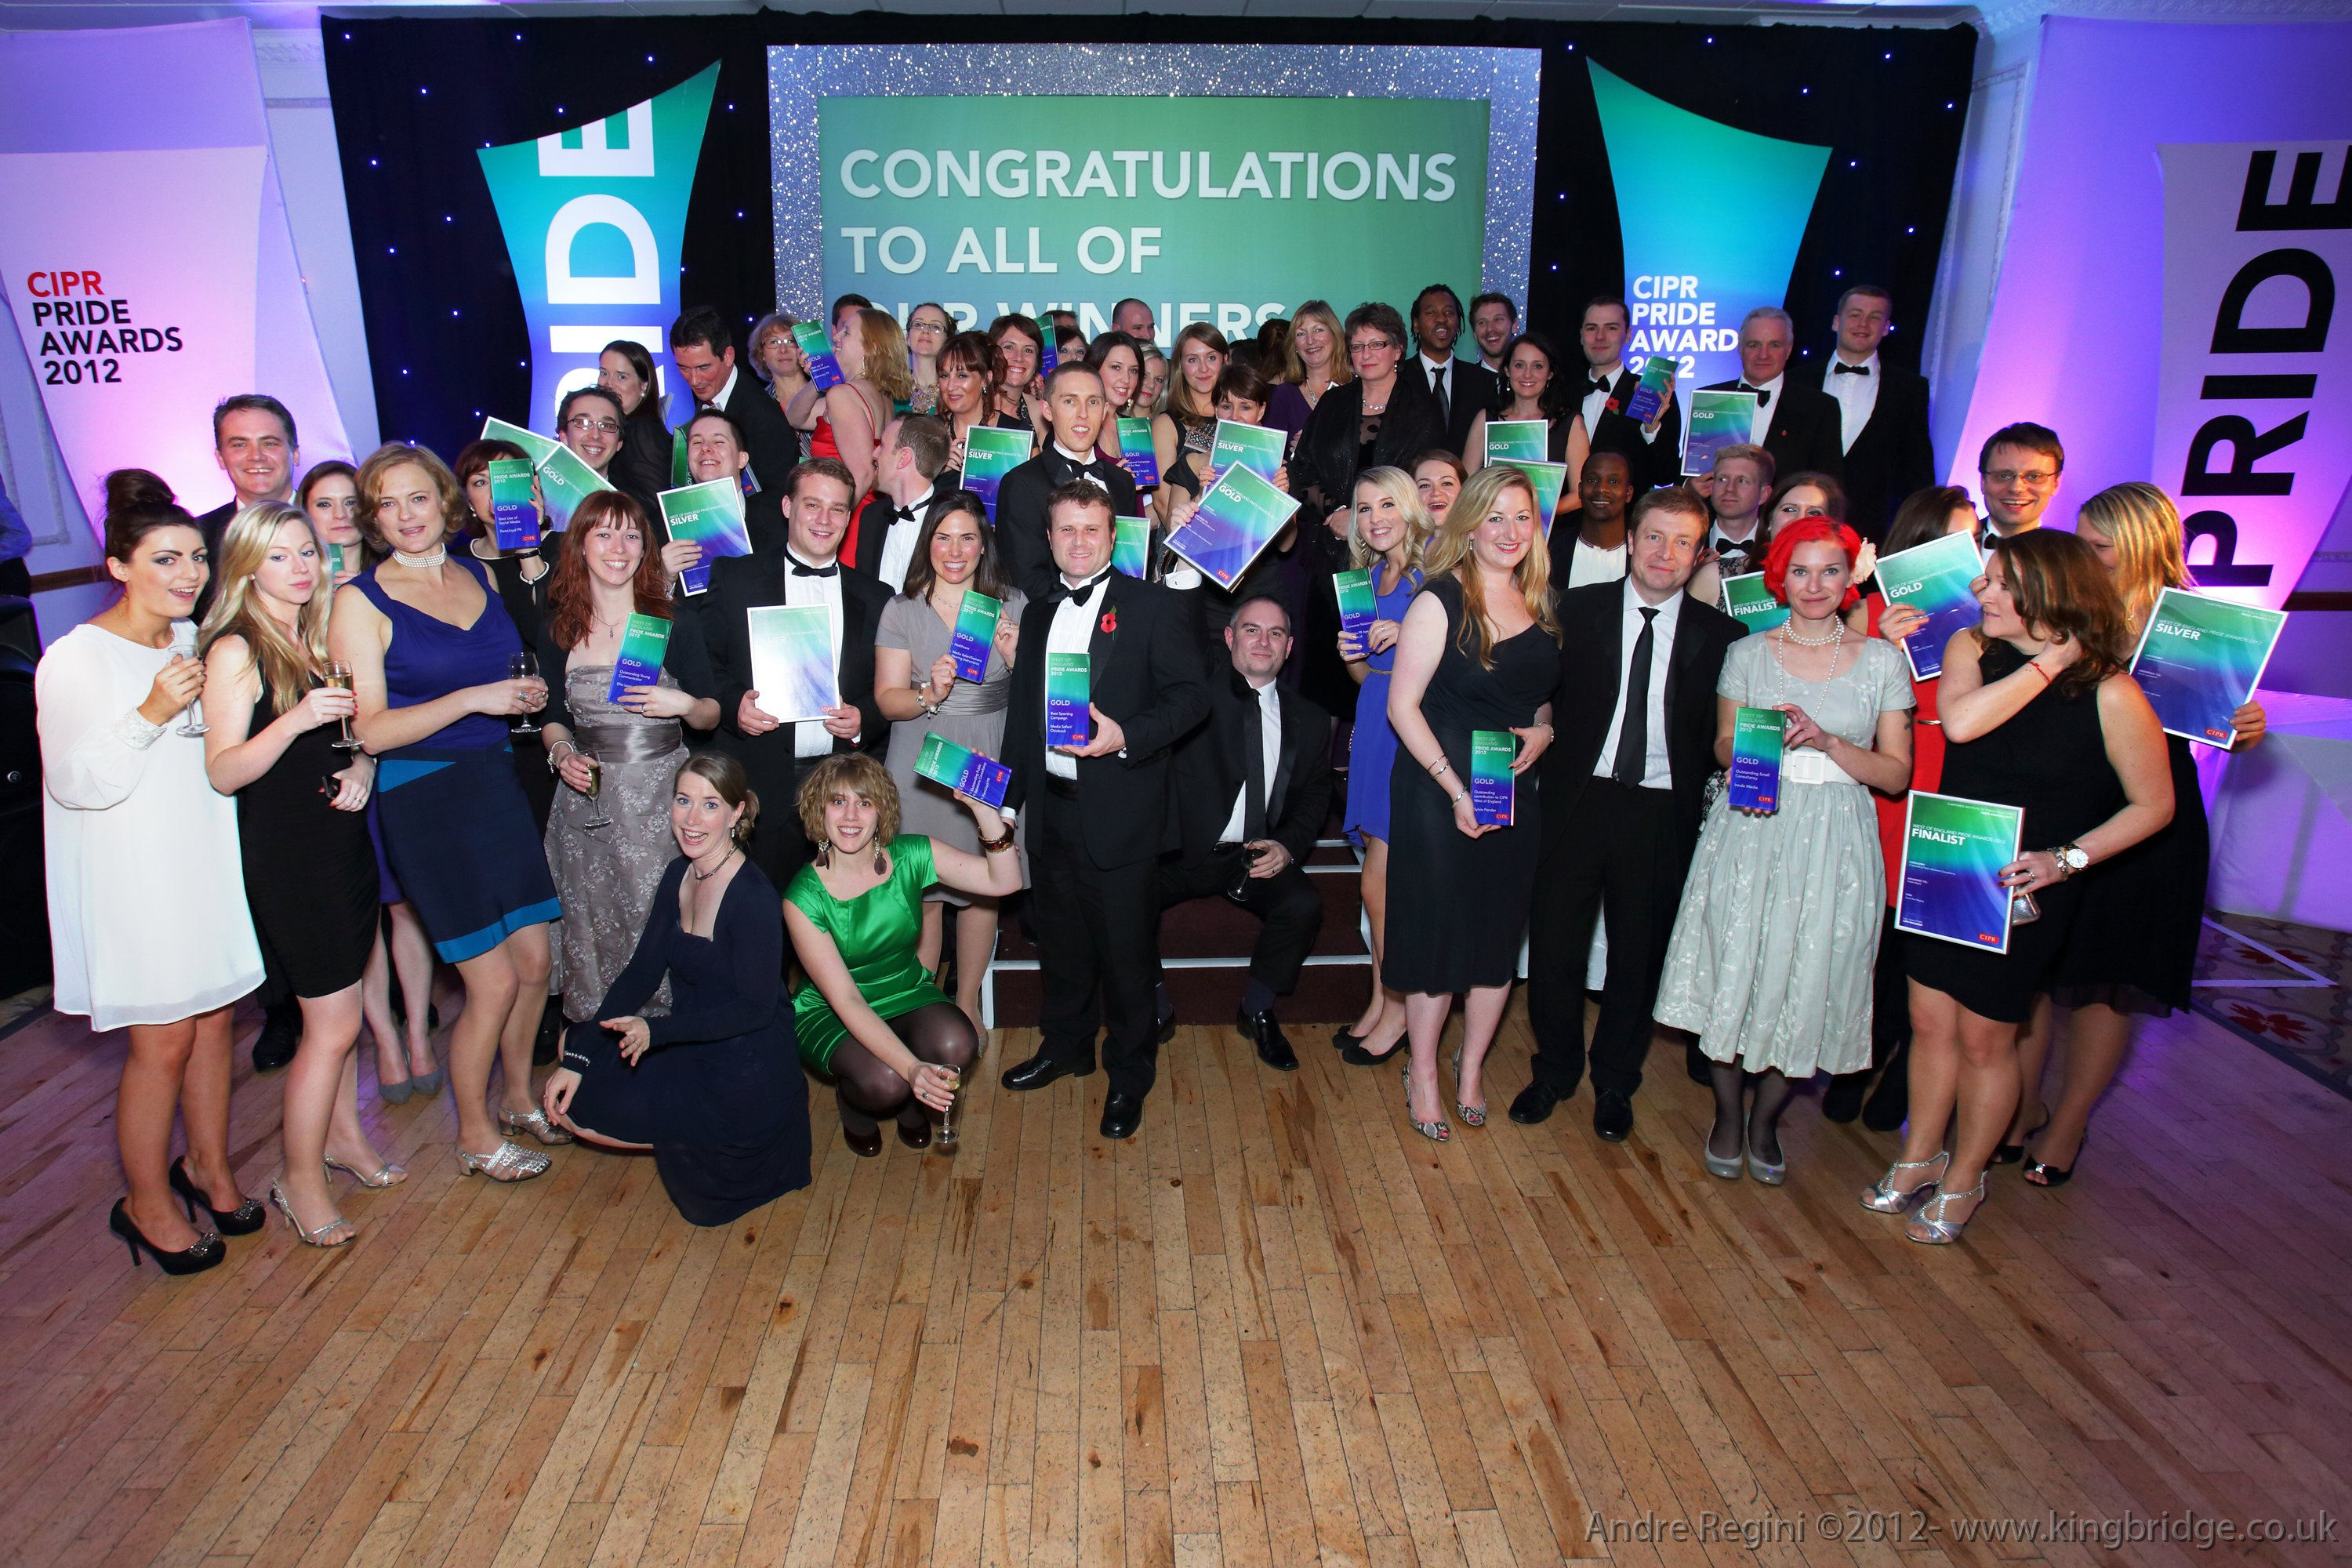 West's top PR talent is showcased at glittering CIPR PRide Awards